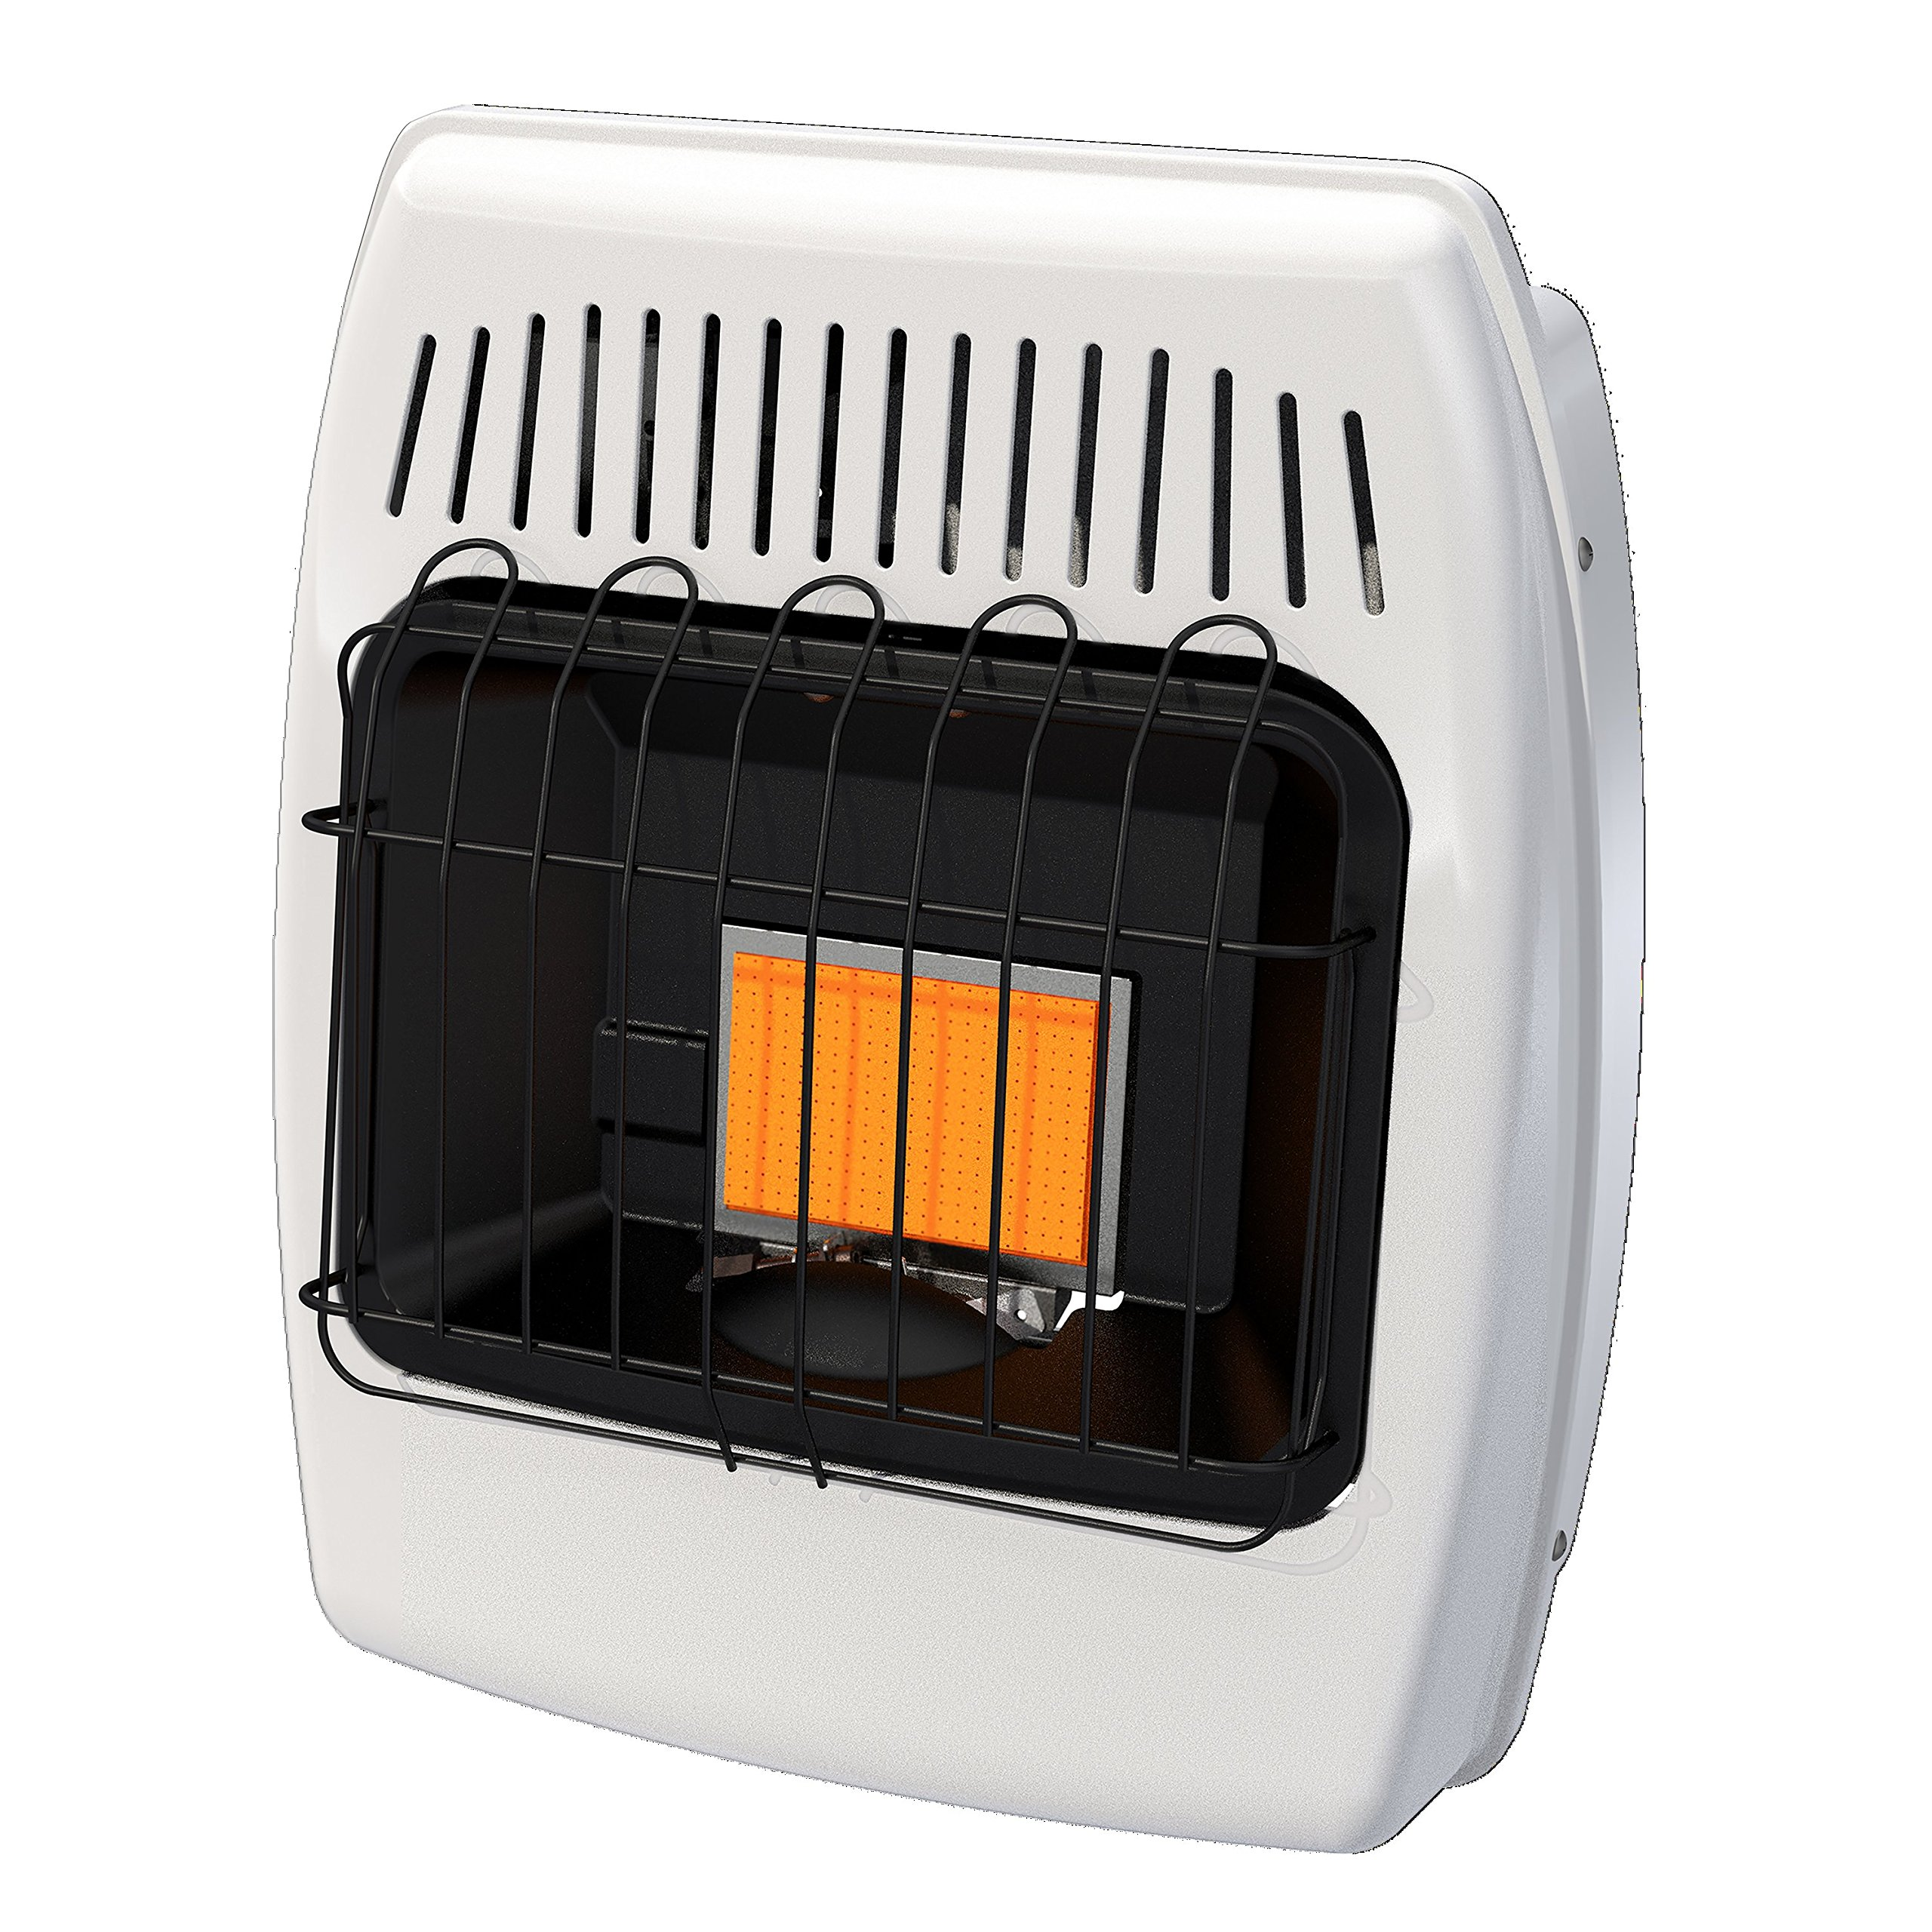 Dyna-Glo IR6NMDG-1 6000 Btu NG Infrared Vent Free Wall Heater